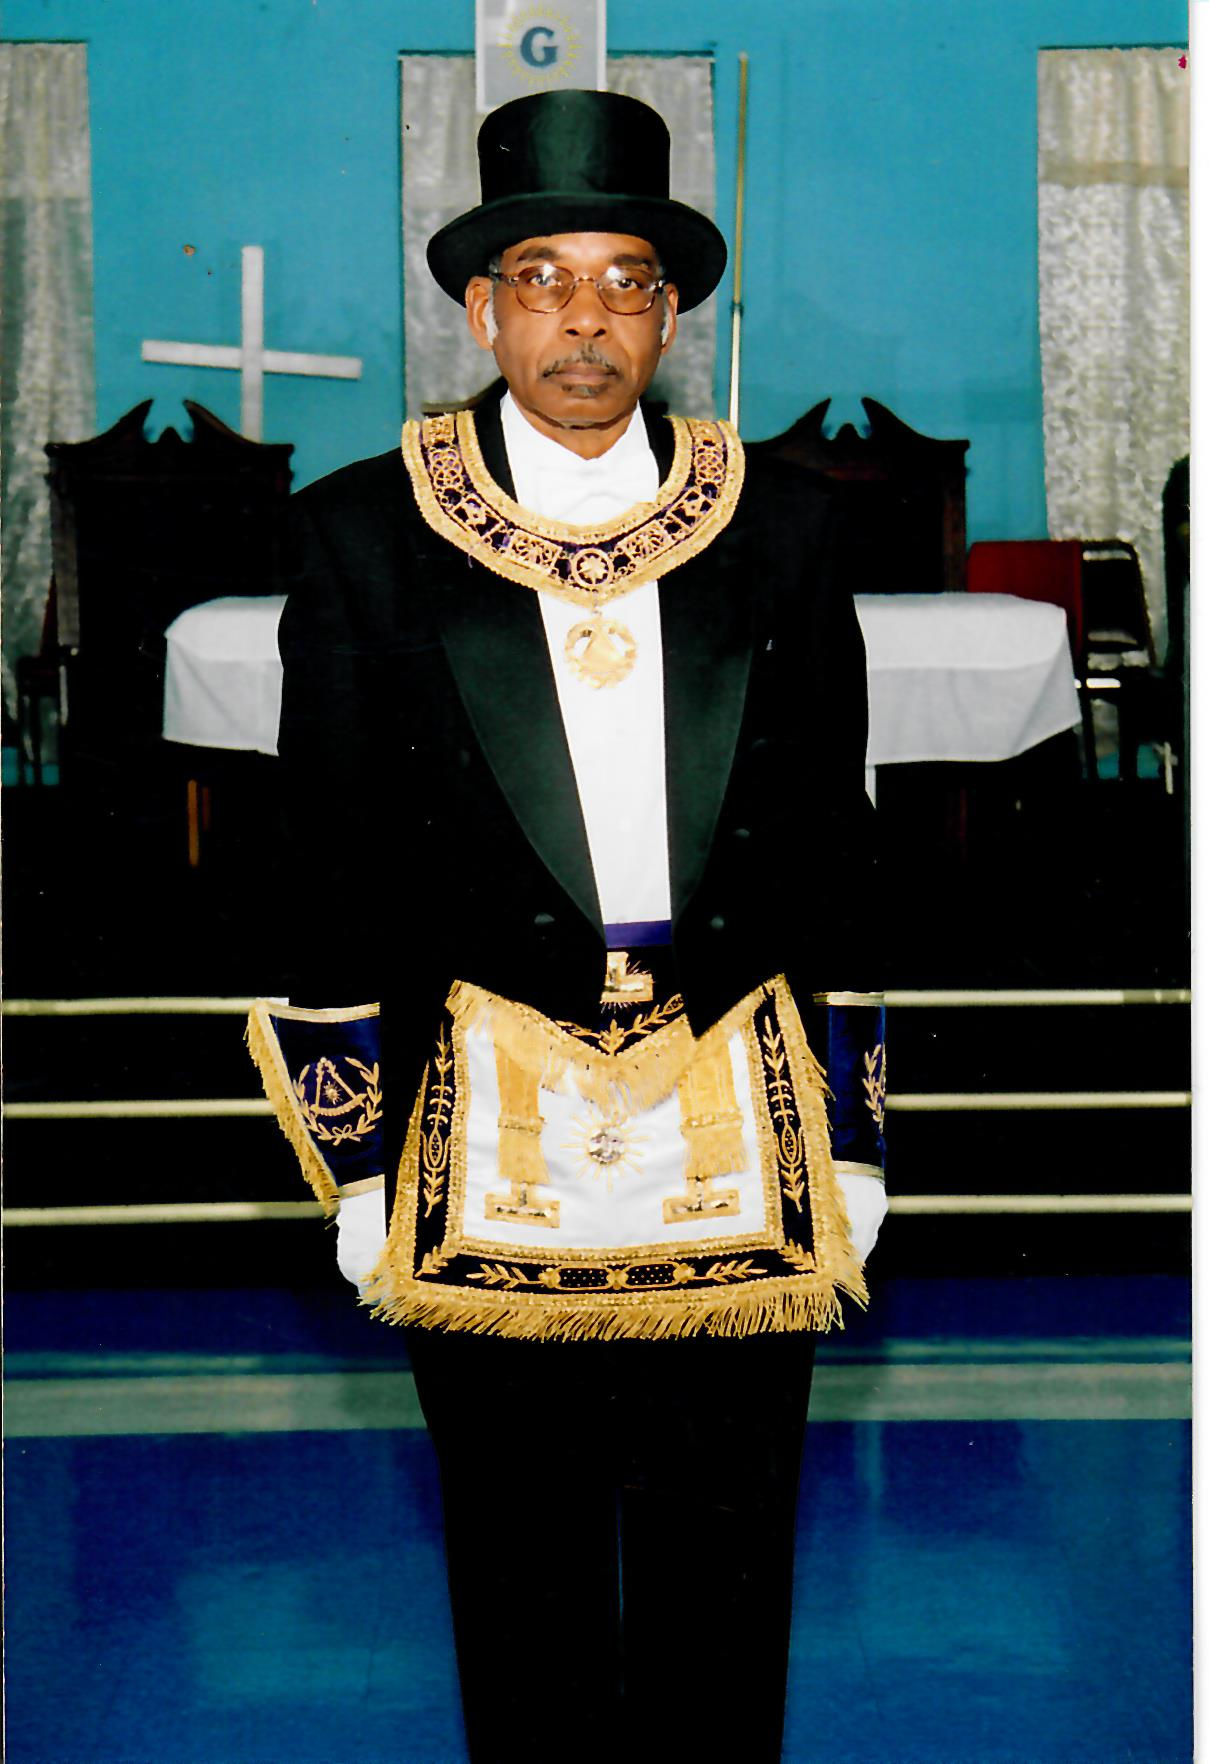 MW WILLIAM H. MURCHISON PGM President General